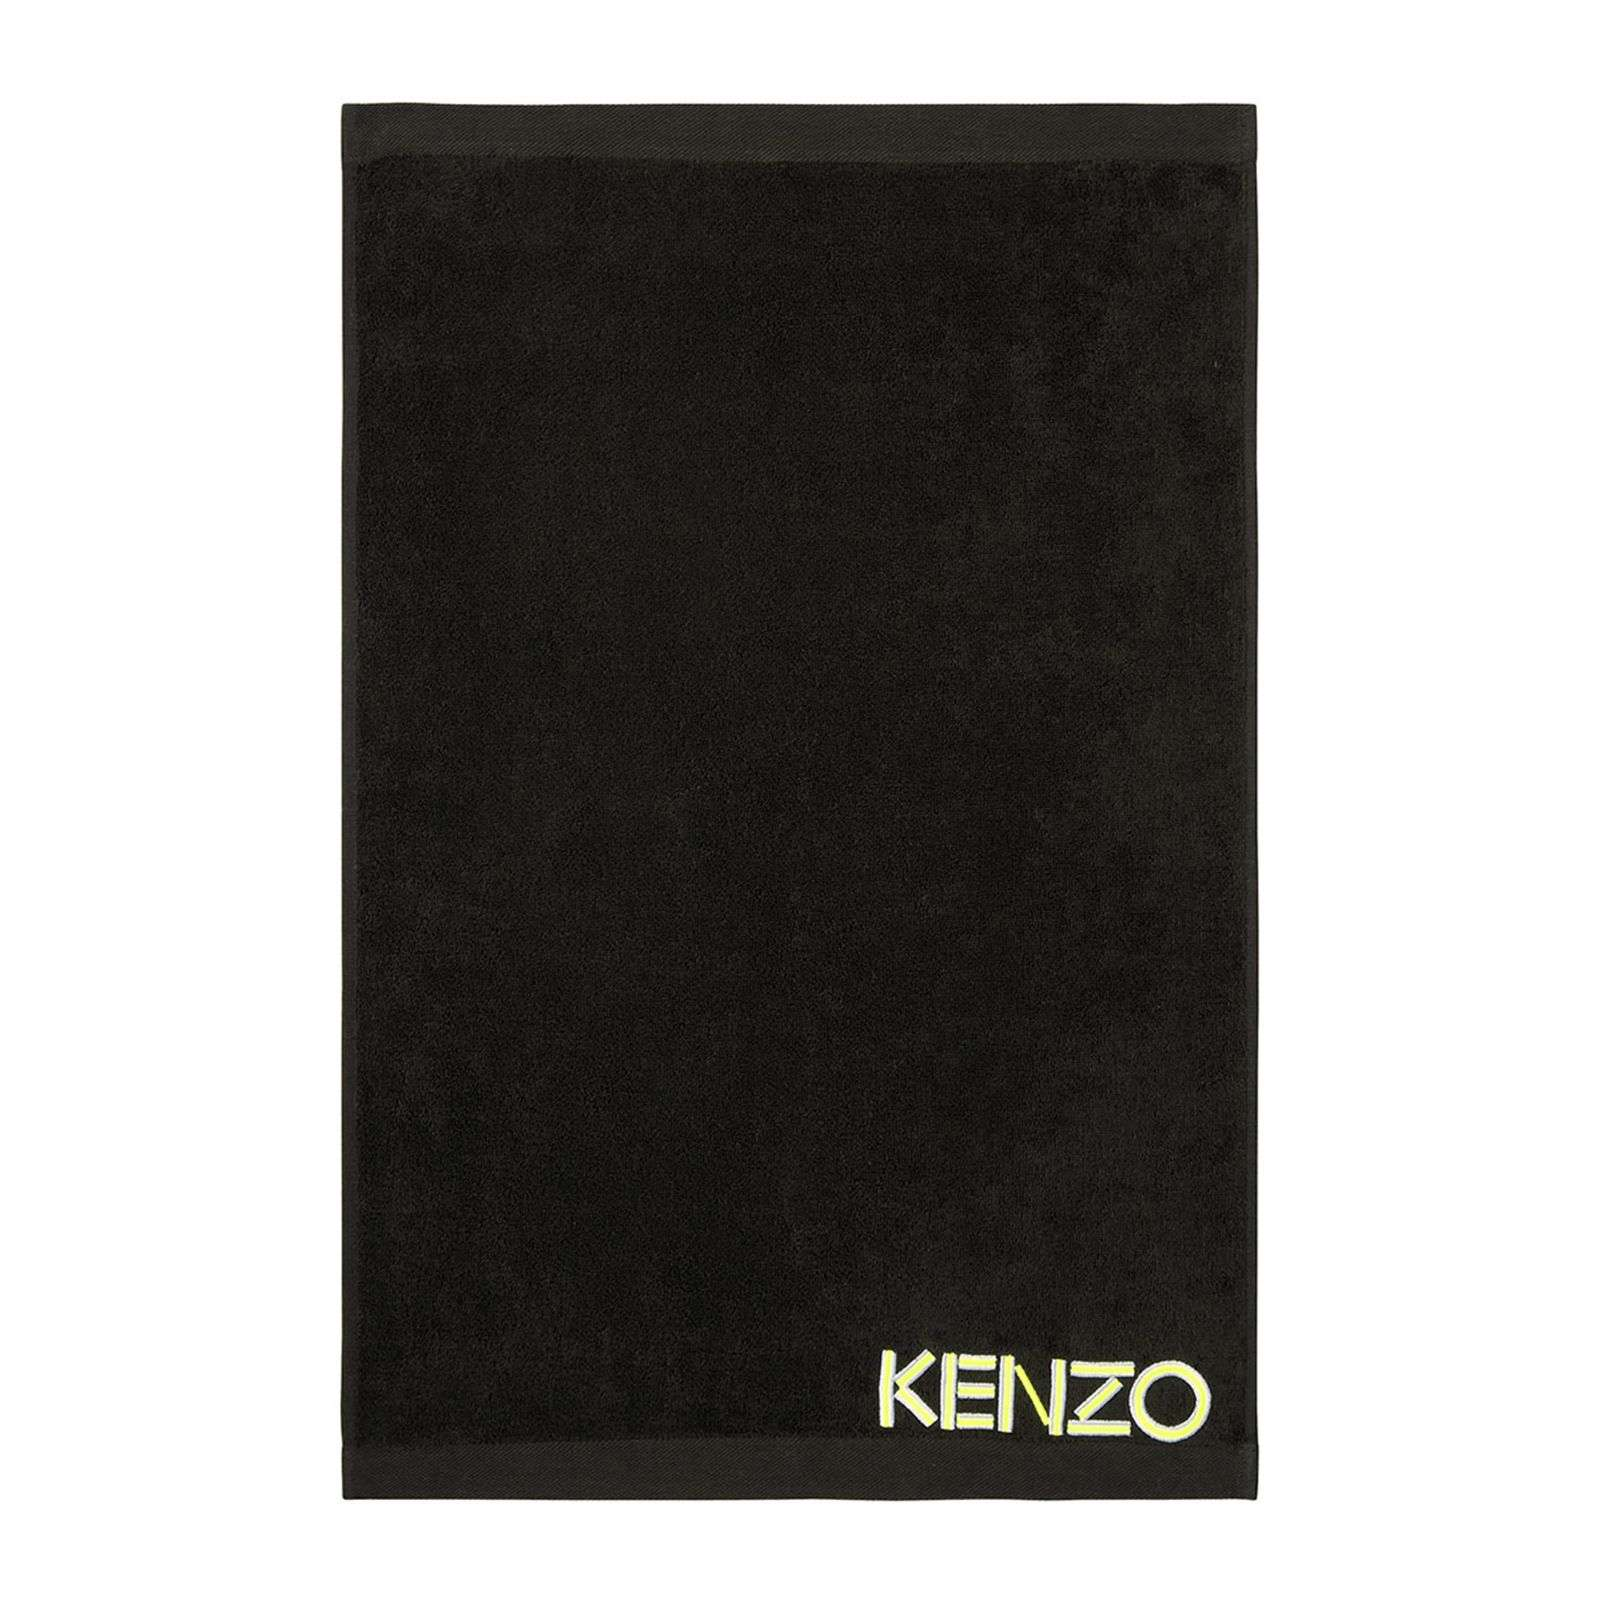 kenzo iconic linge de bain noir brandalley. Black Bedroom Furniture Sets. Home Design Ideas